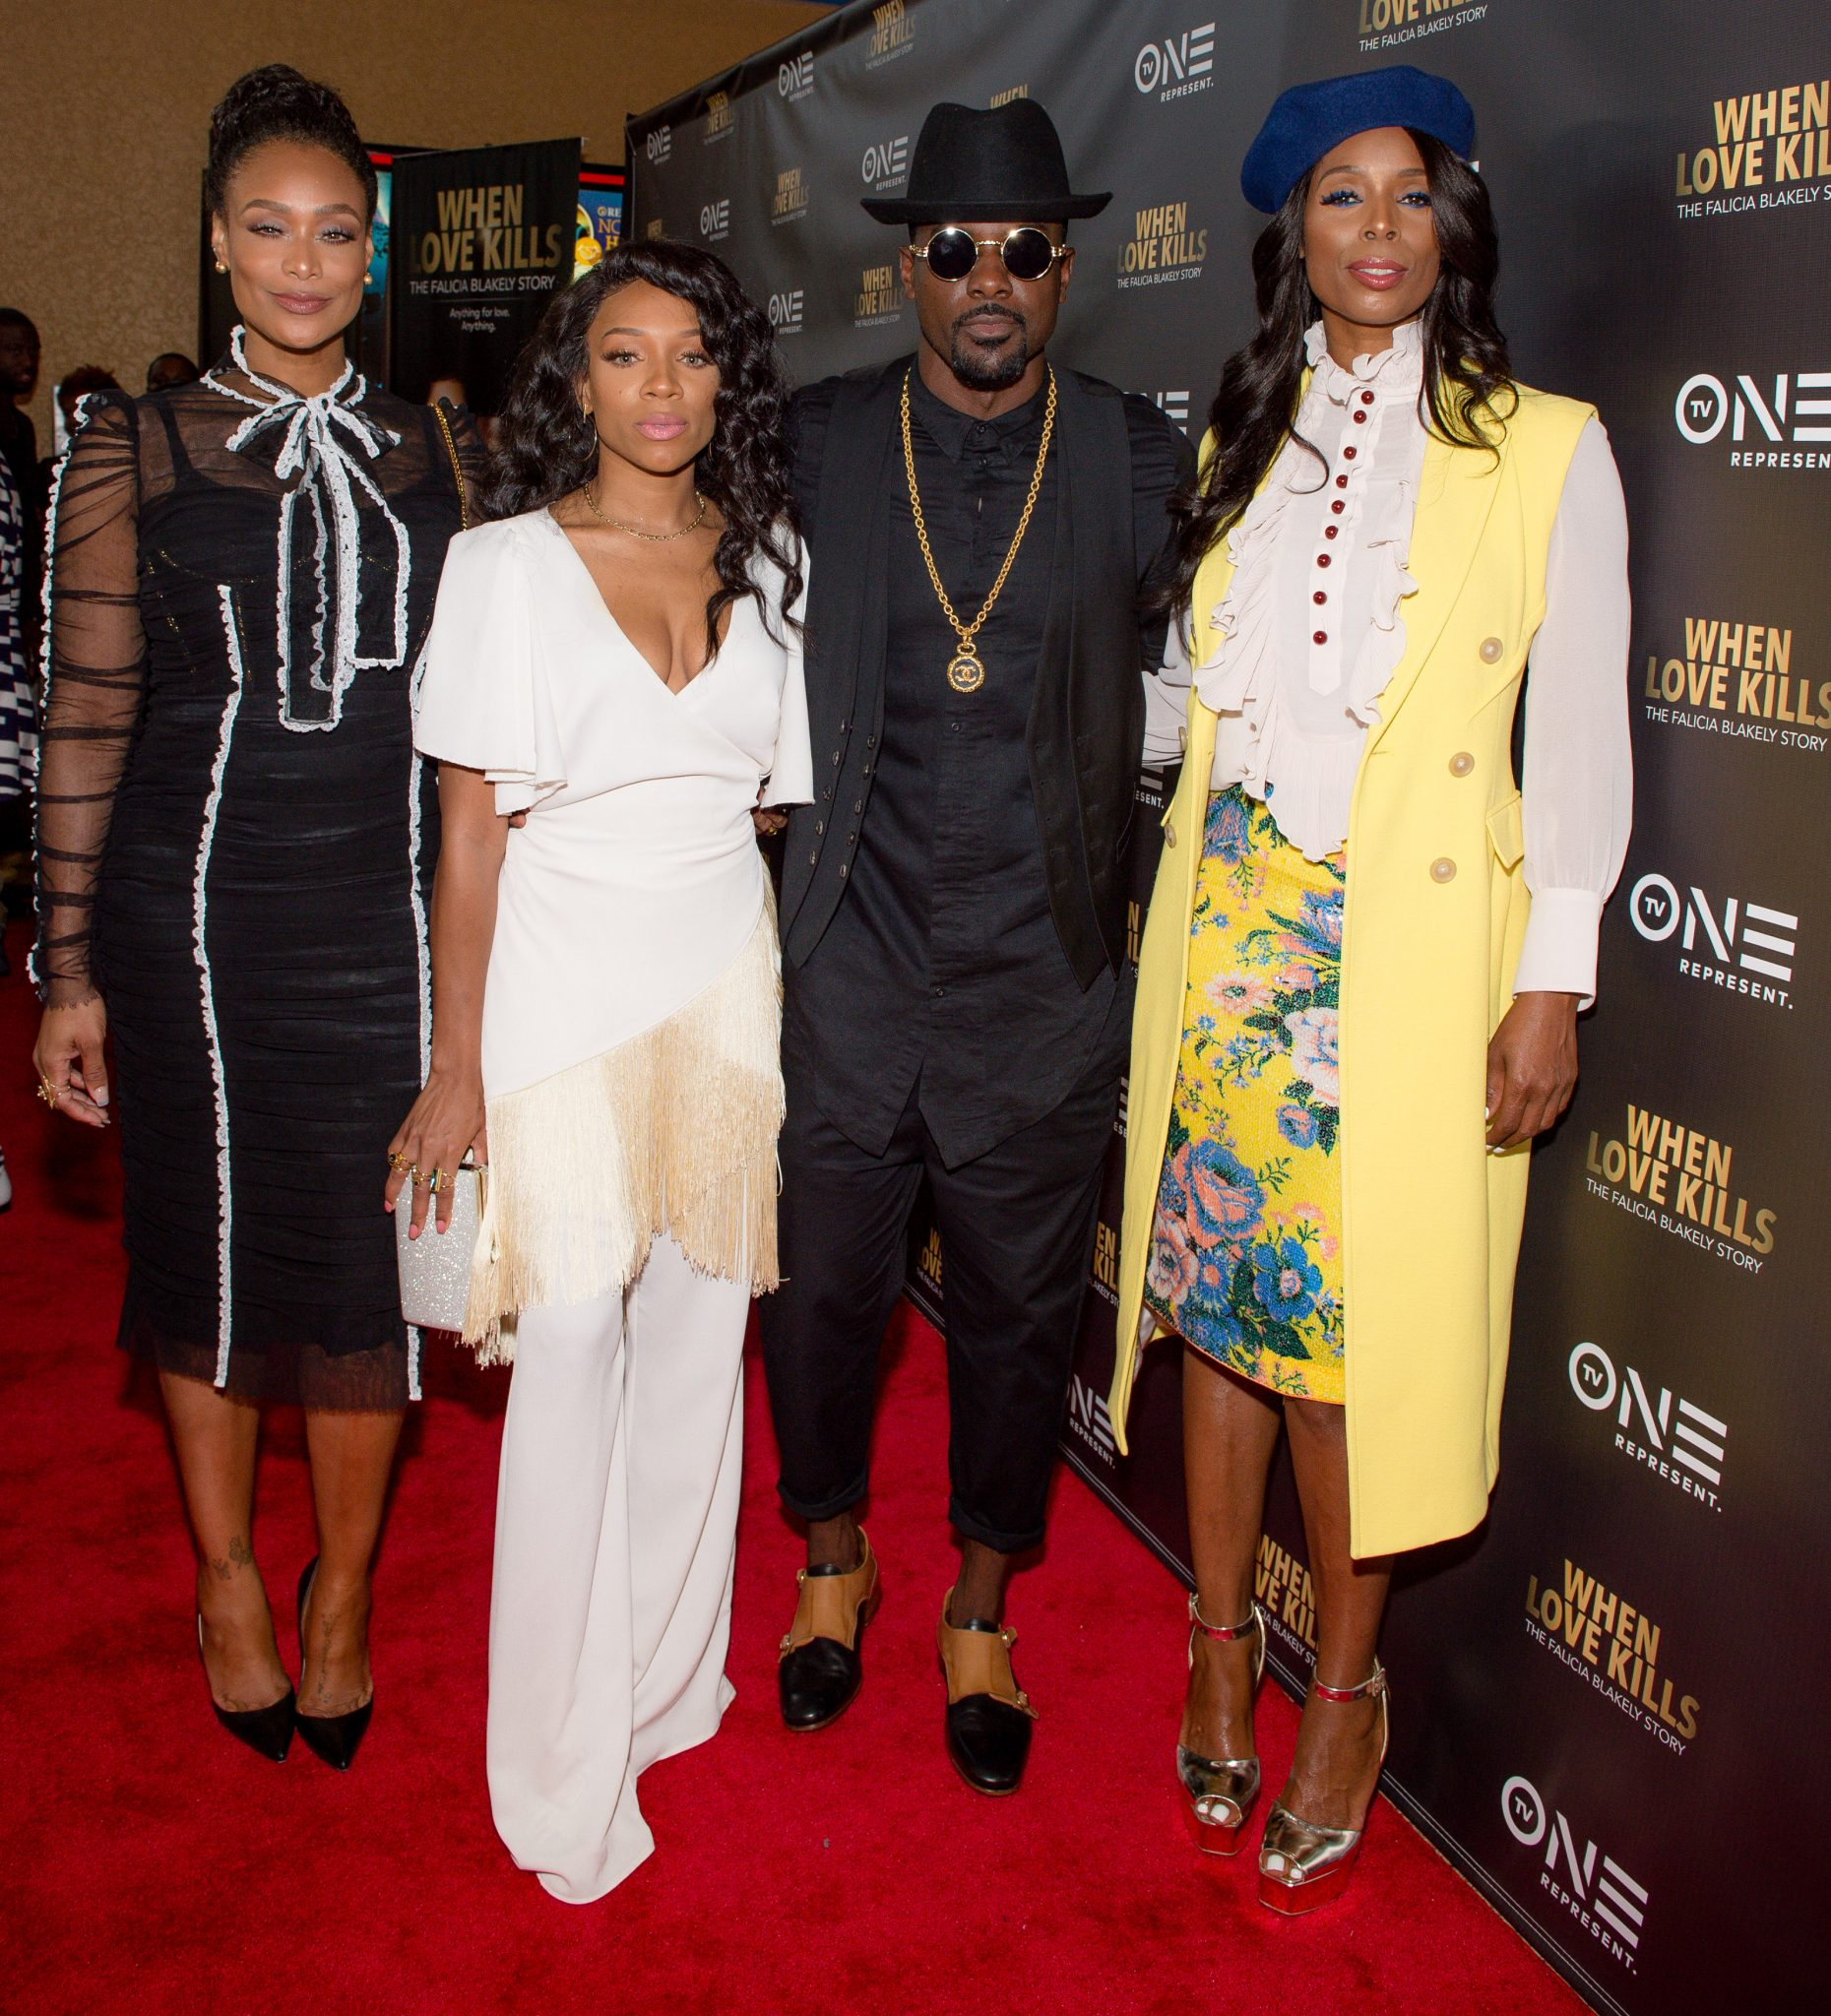 Red Carpet Arrivals: When Love Kills The Falicia Blakely Story